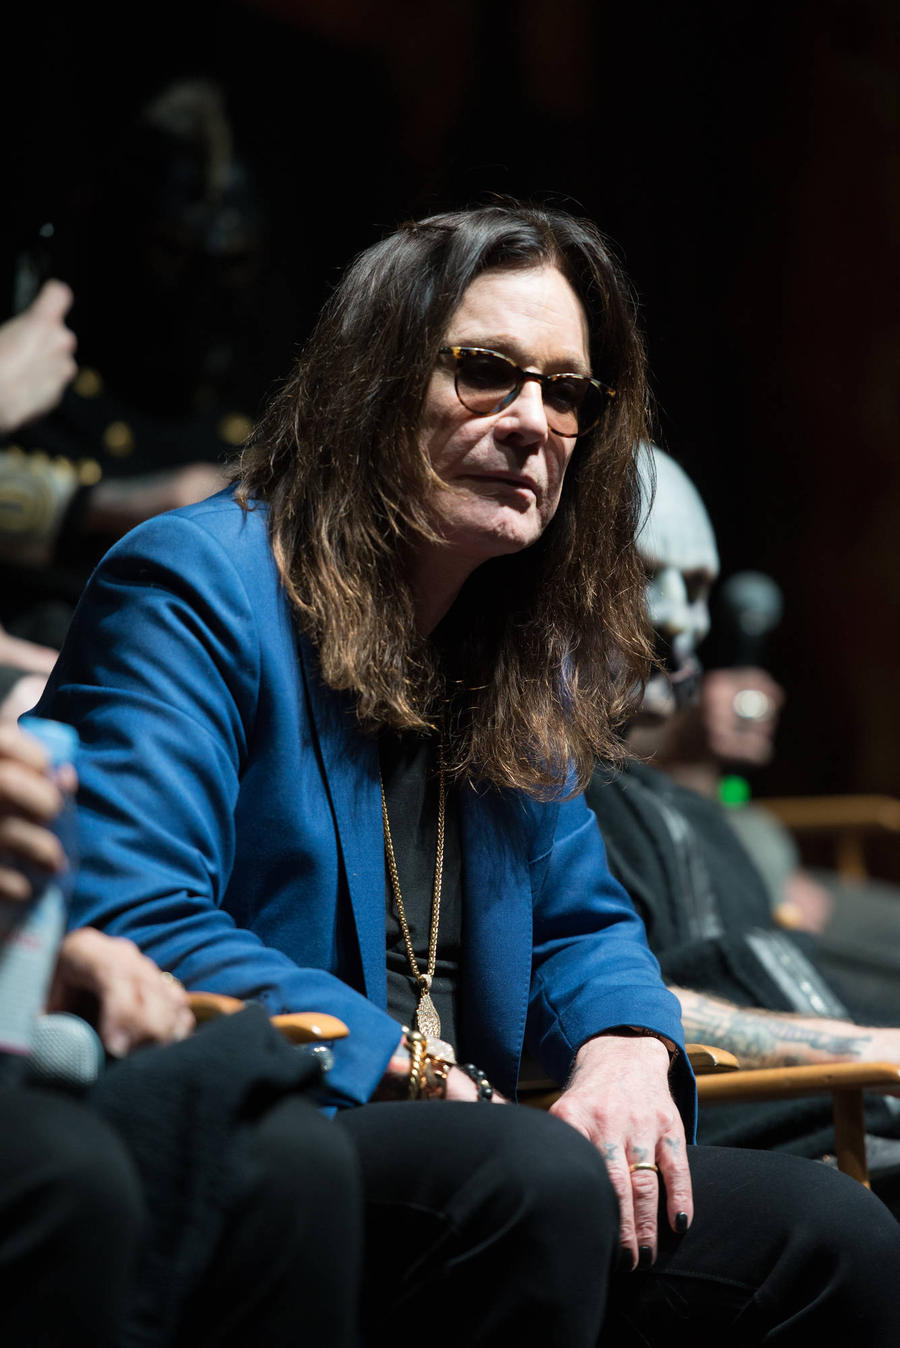 Ozzy Osbourne | Biography, News, Photos and Videos ...